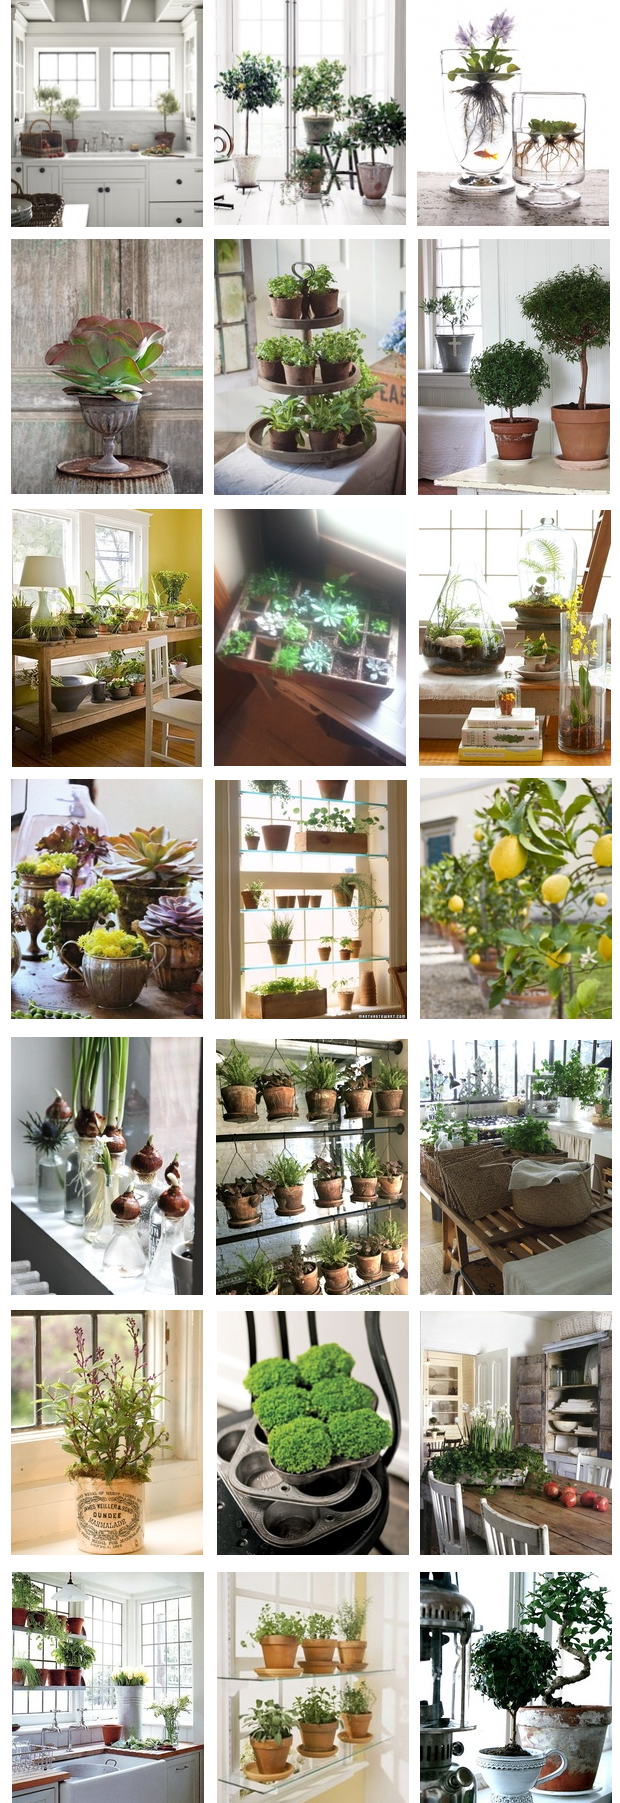 Potted plants potted plants inside gardening inside for Indoor plant ideas